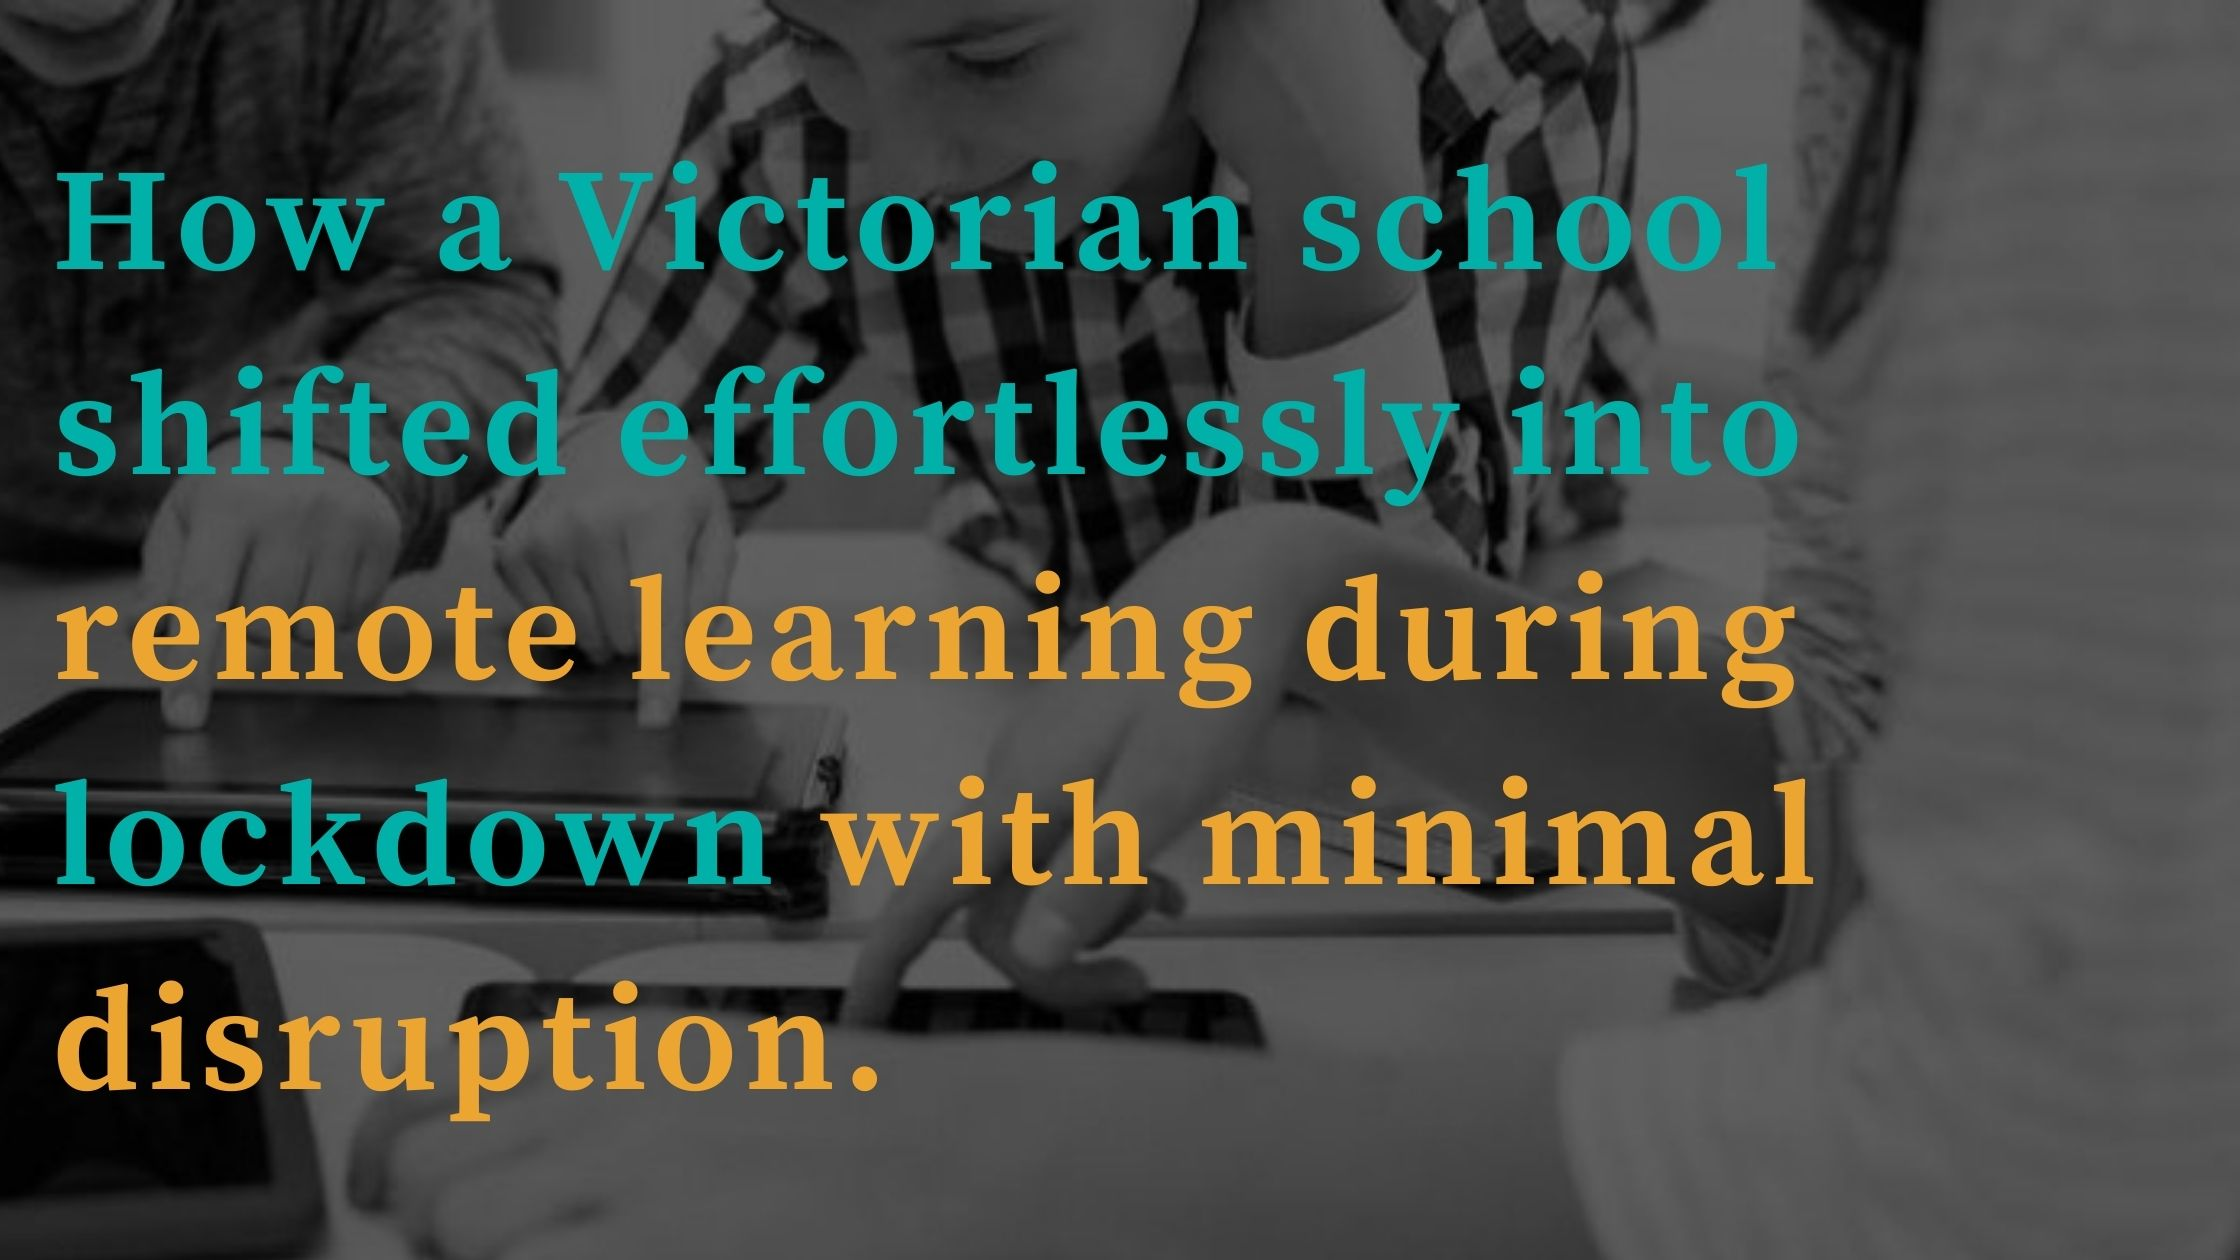 How a top Victorian college shifted  into remote learning delivery with minimal disruption during lockdown